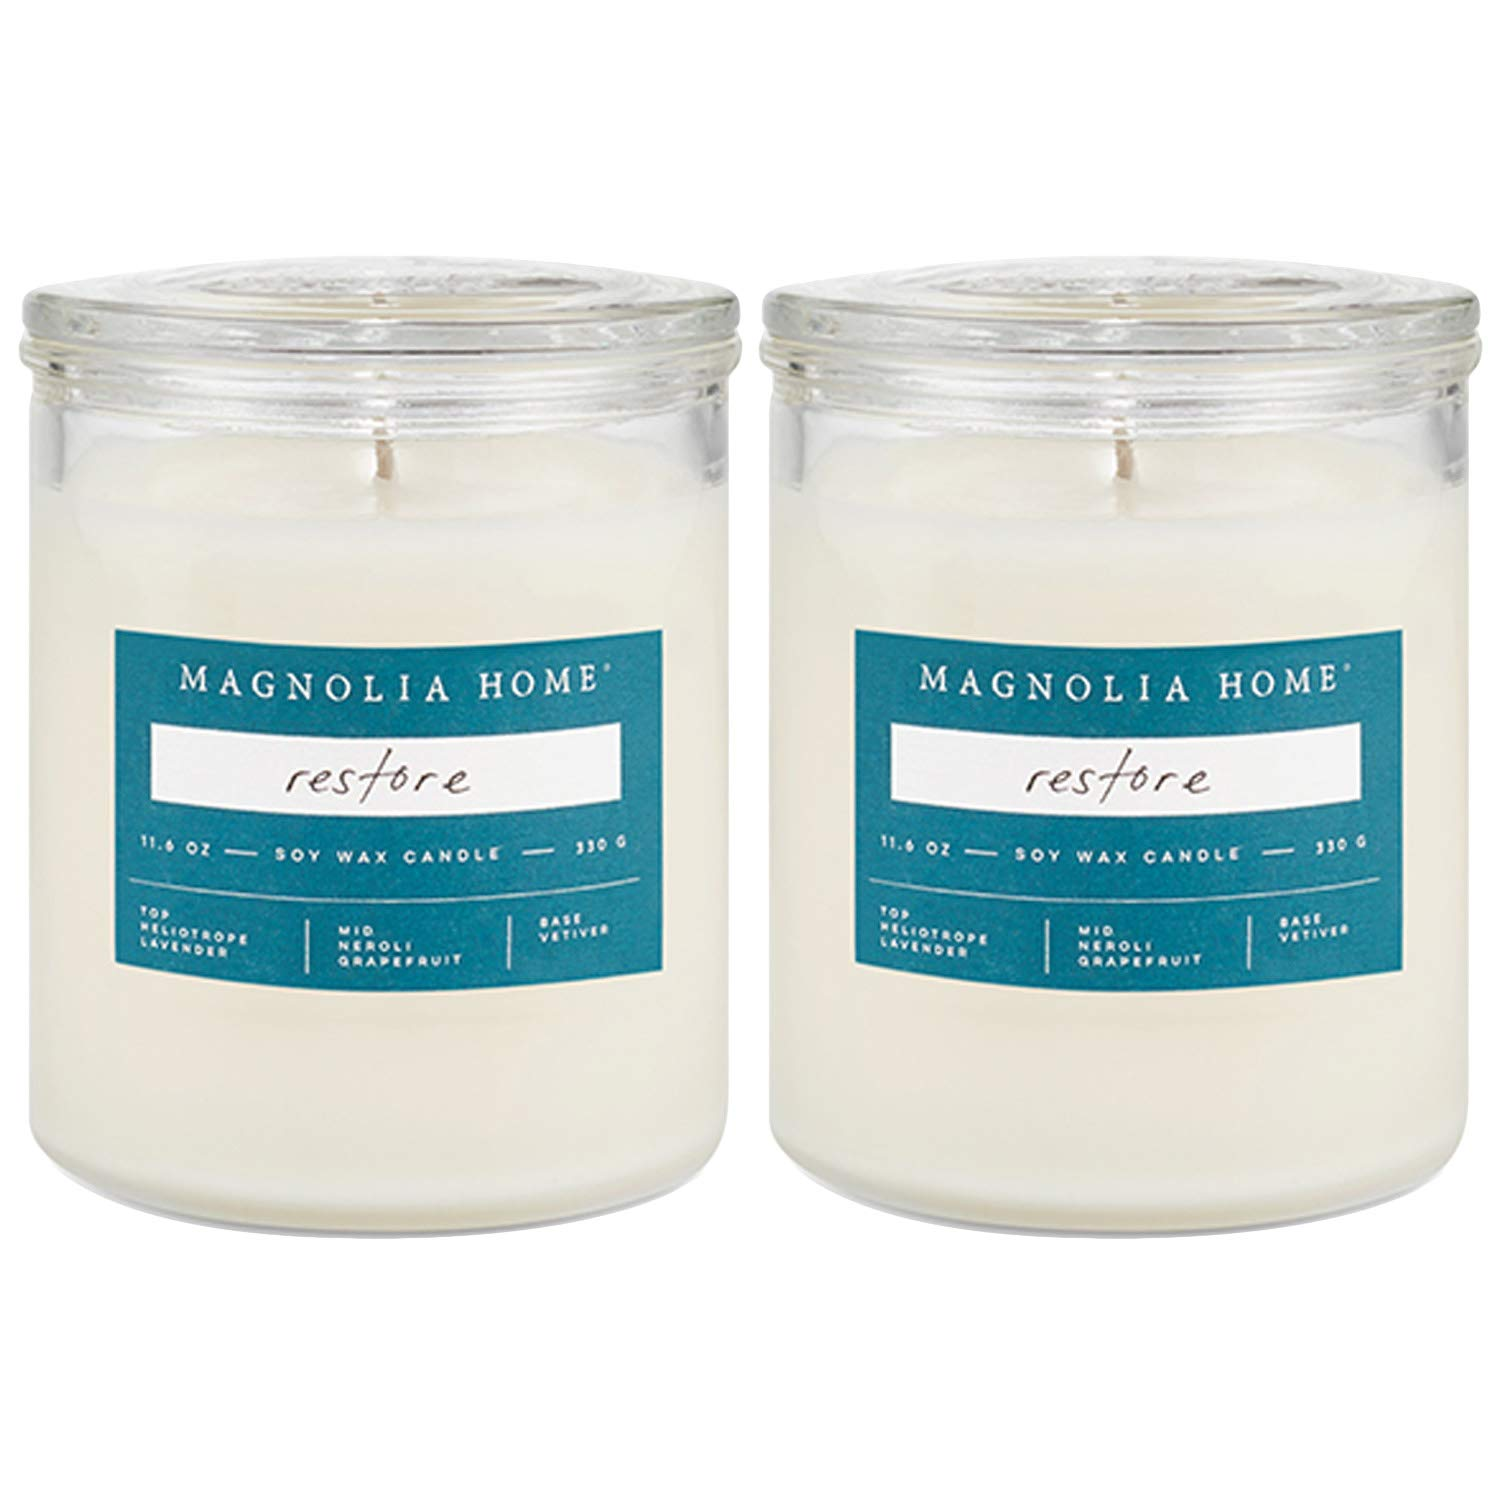 Magnolia Home Restore Scented Soy Wax 11.6 oz Glass Candle Jar with Lid by Joanna Gaines- Illume Pack of 2